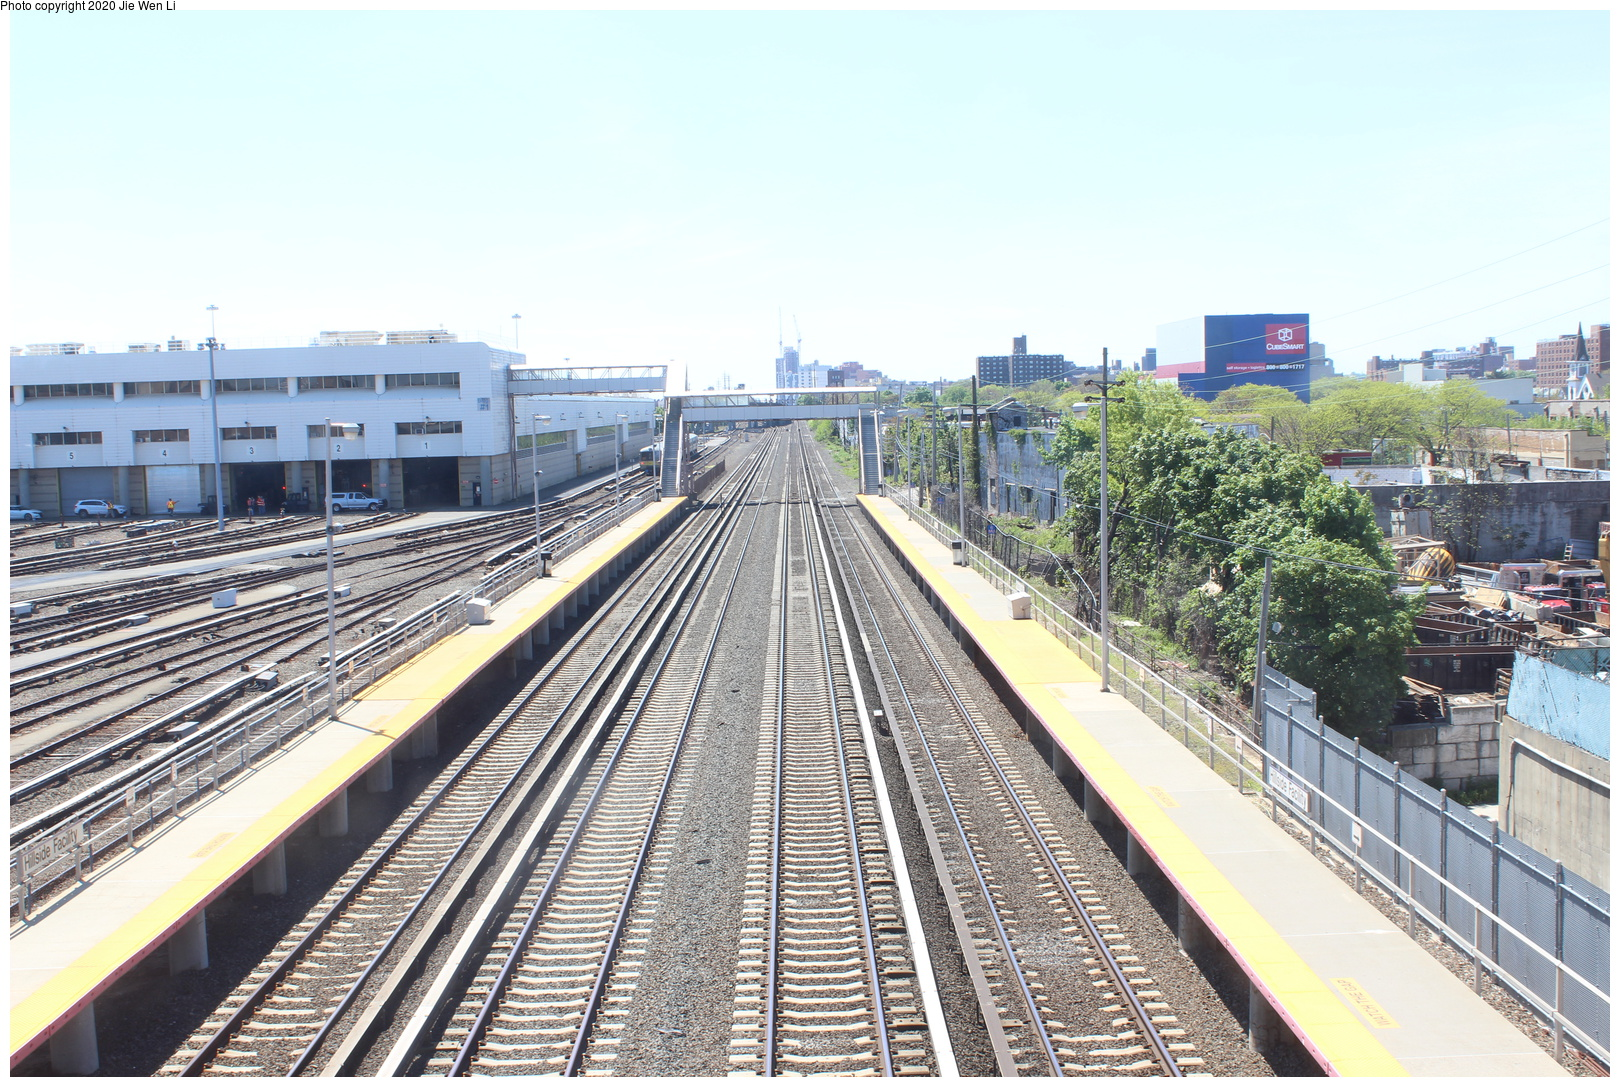 (213k, 1026x1044)<br><b>Country:</b> United States<br><b>City:</b> New York<br><b>System:</b> New York City Transit<br><b>Location:</b> East 180th Street Yard<br><b>Car:</b> Low-V 4932/5324 <br><b>Photo by:</b> Joel Shanus<br><b>Viewed (this week/total):</b> 1 / 807